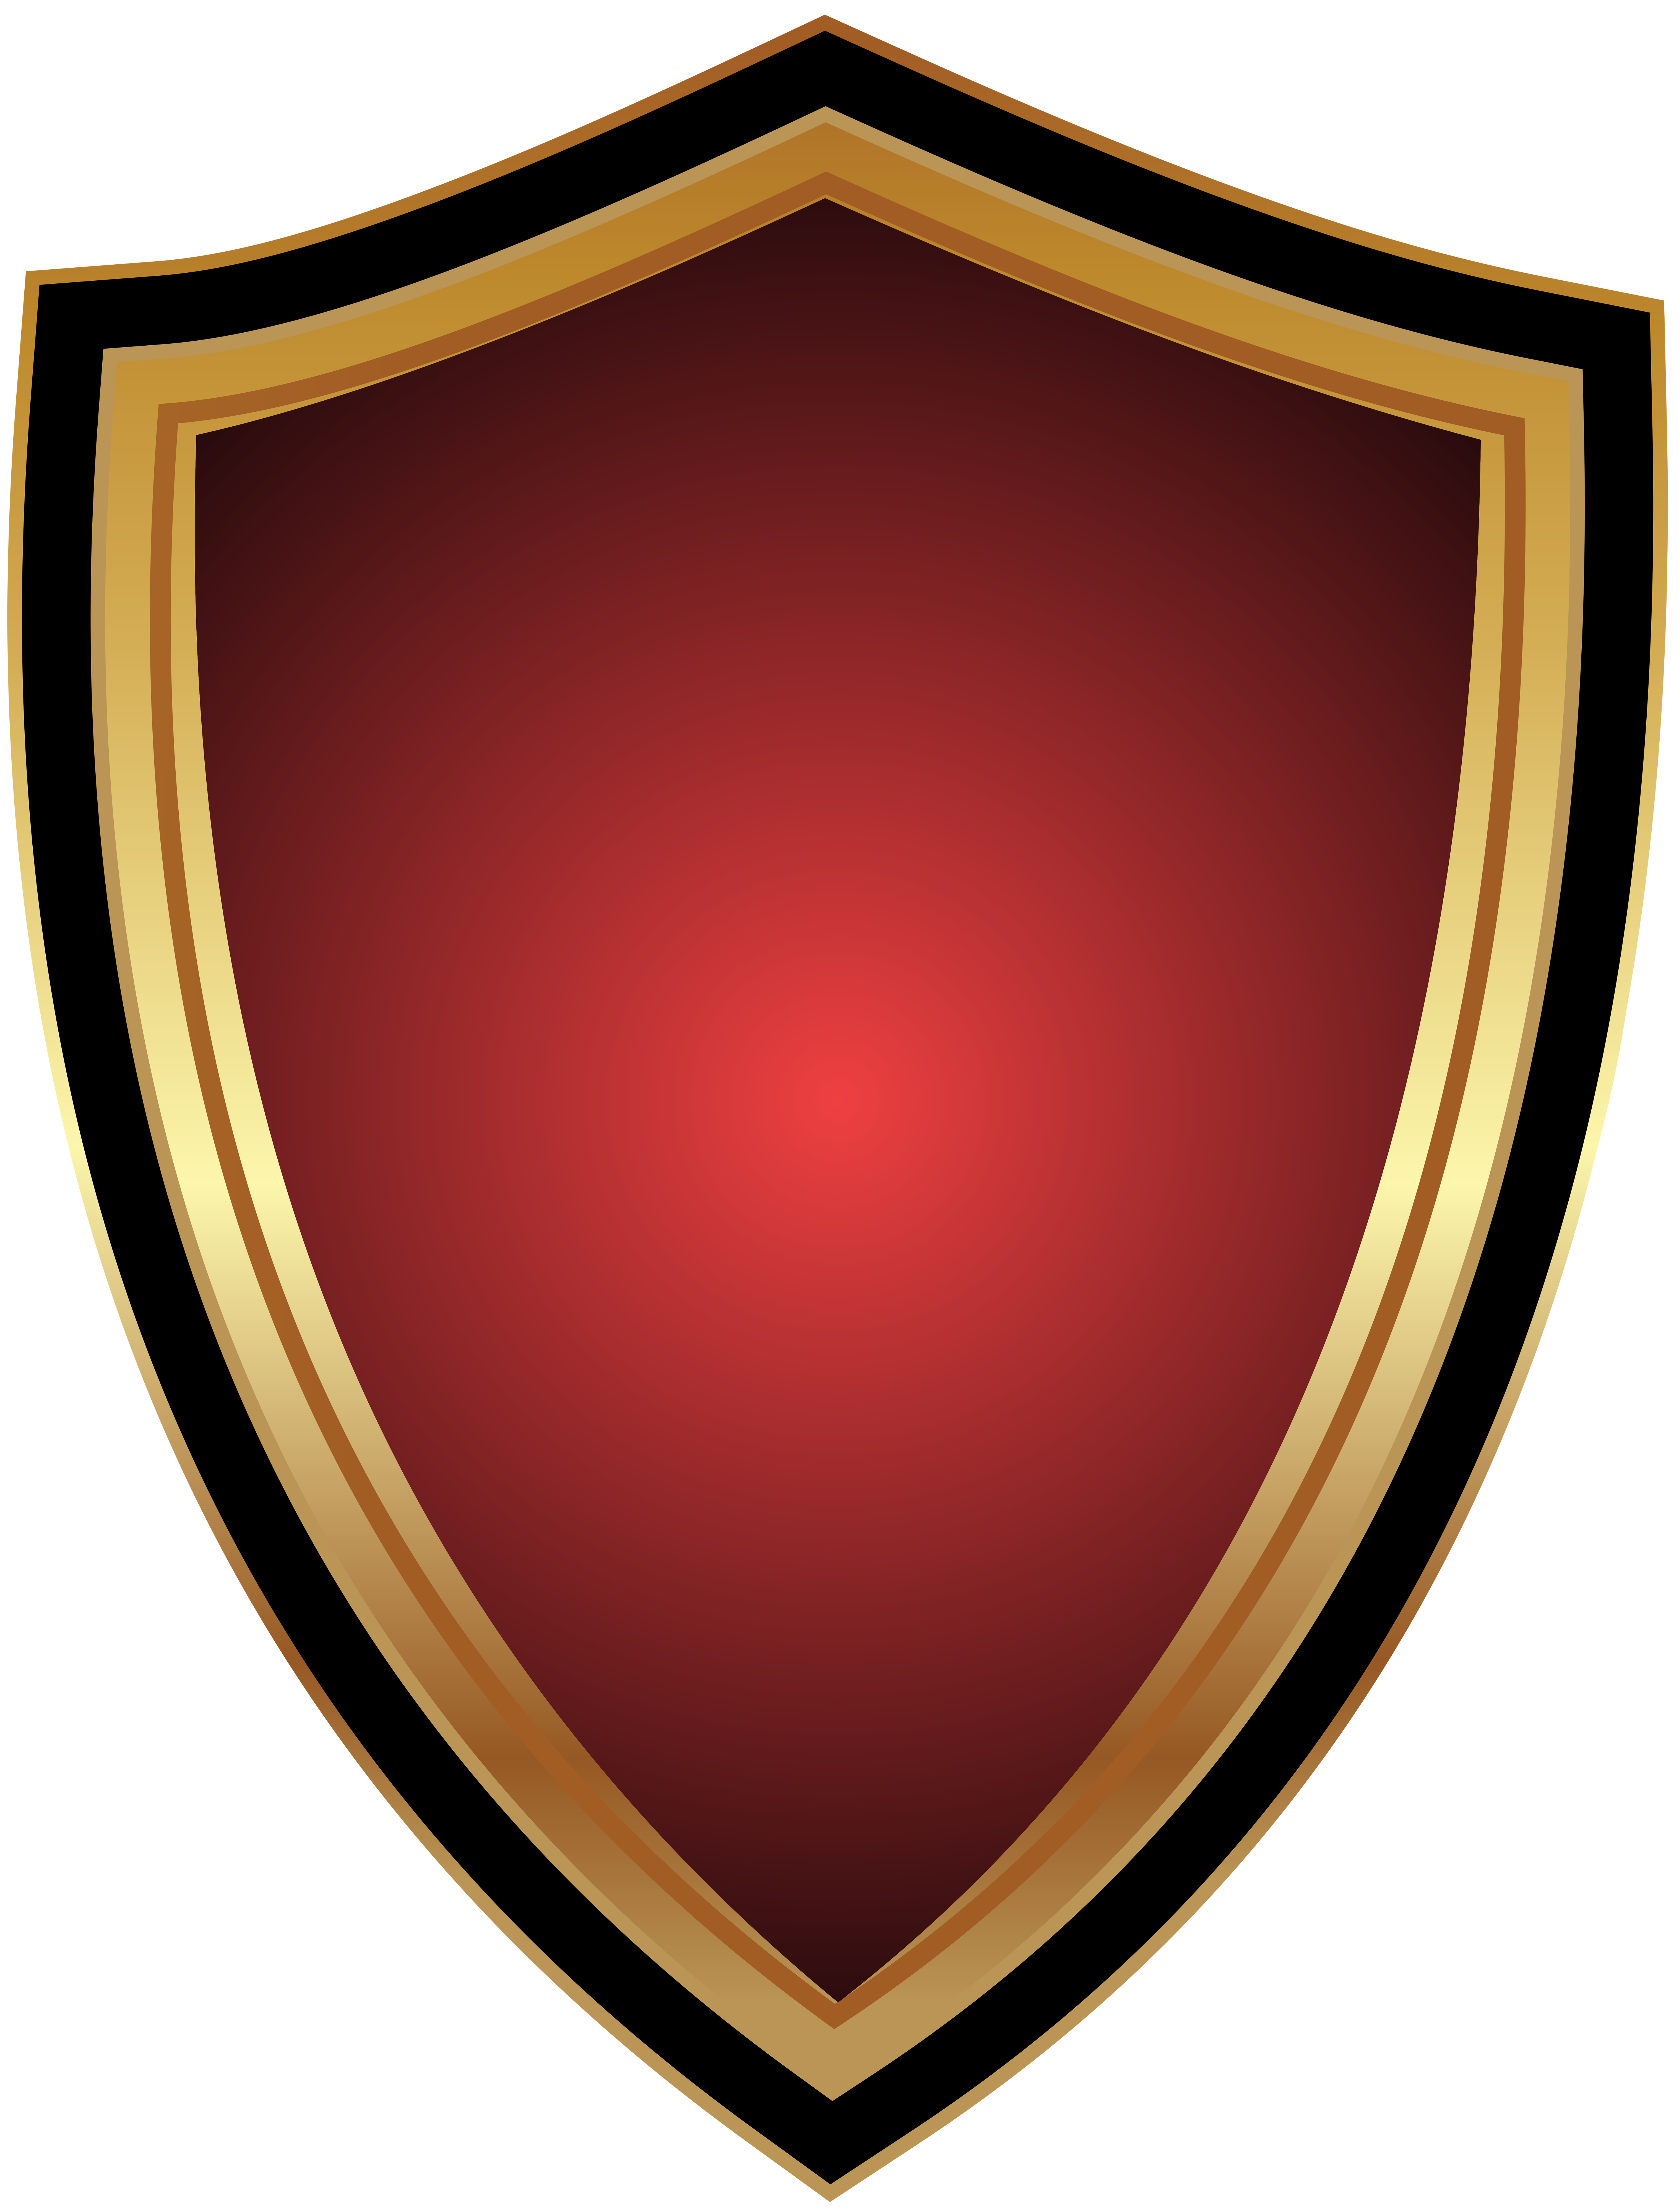 Red transparent clip art. Badge clipart banner royalty free